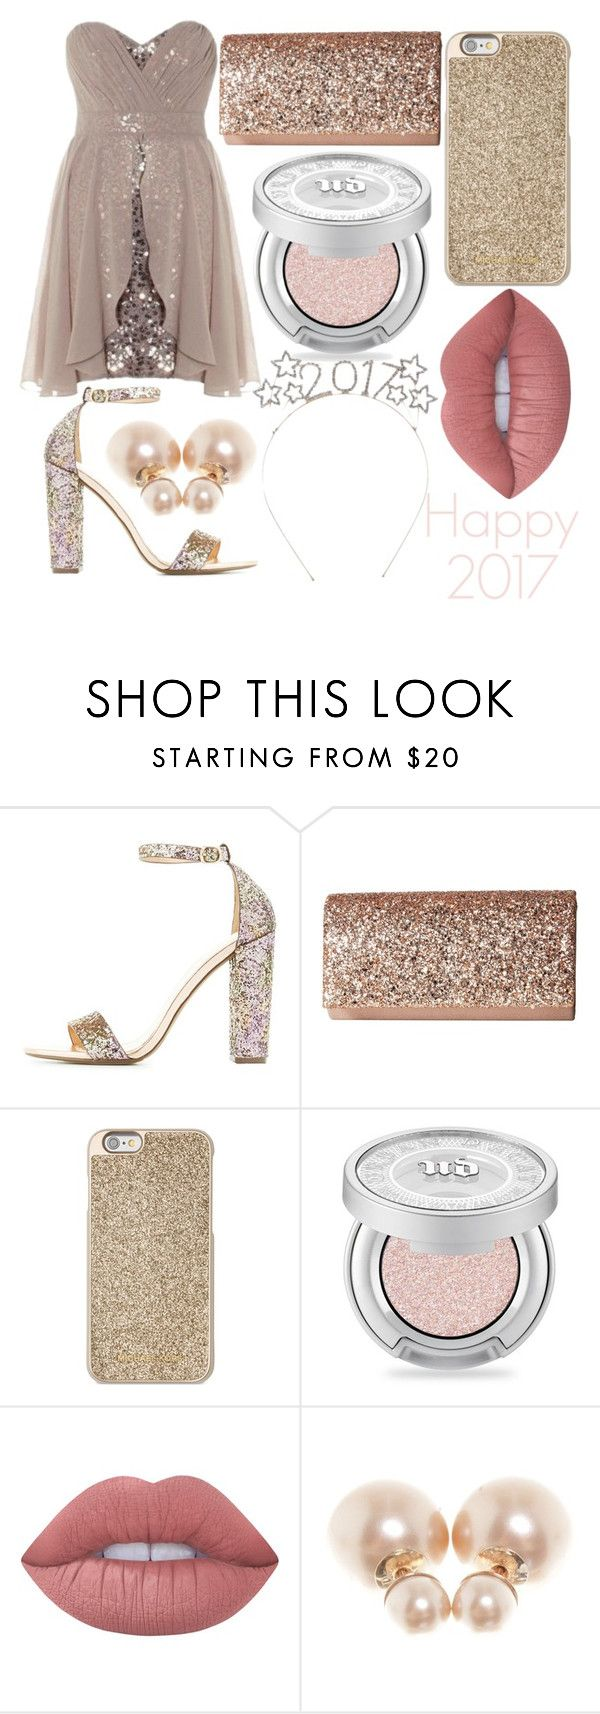 """""""Happy 2017!"""" by kaitlyn-ashby101 ❤ liked on Polyvore featuring Charlotte Russe, Jessica McClintock, Michael Kors, Urban Decay, Lime Crime and Christian Dior"""